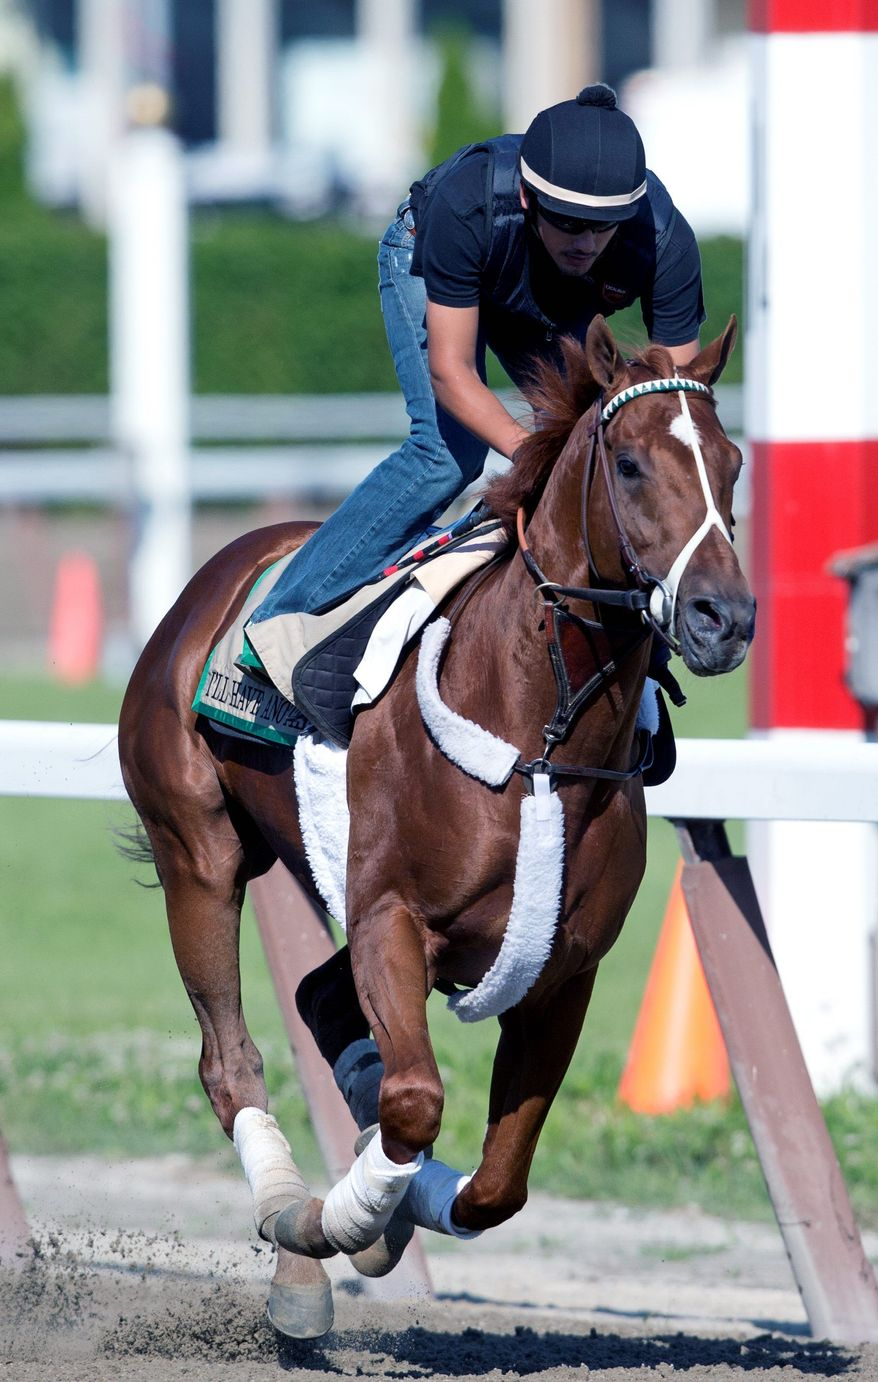 I'll Have Another with exercise rider Jonny Garcia up, trains at Belmont Park in Elmont, N.Y., on Thursday, June 7, 2012. The winner of the Kentucky Derby and Preakness will attempt to win the Belmont Stakes horse race and Triple Crown on Saturday. (AP Photo/Mike Groll)